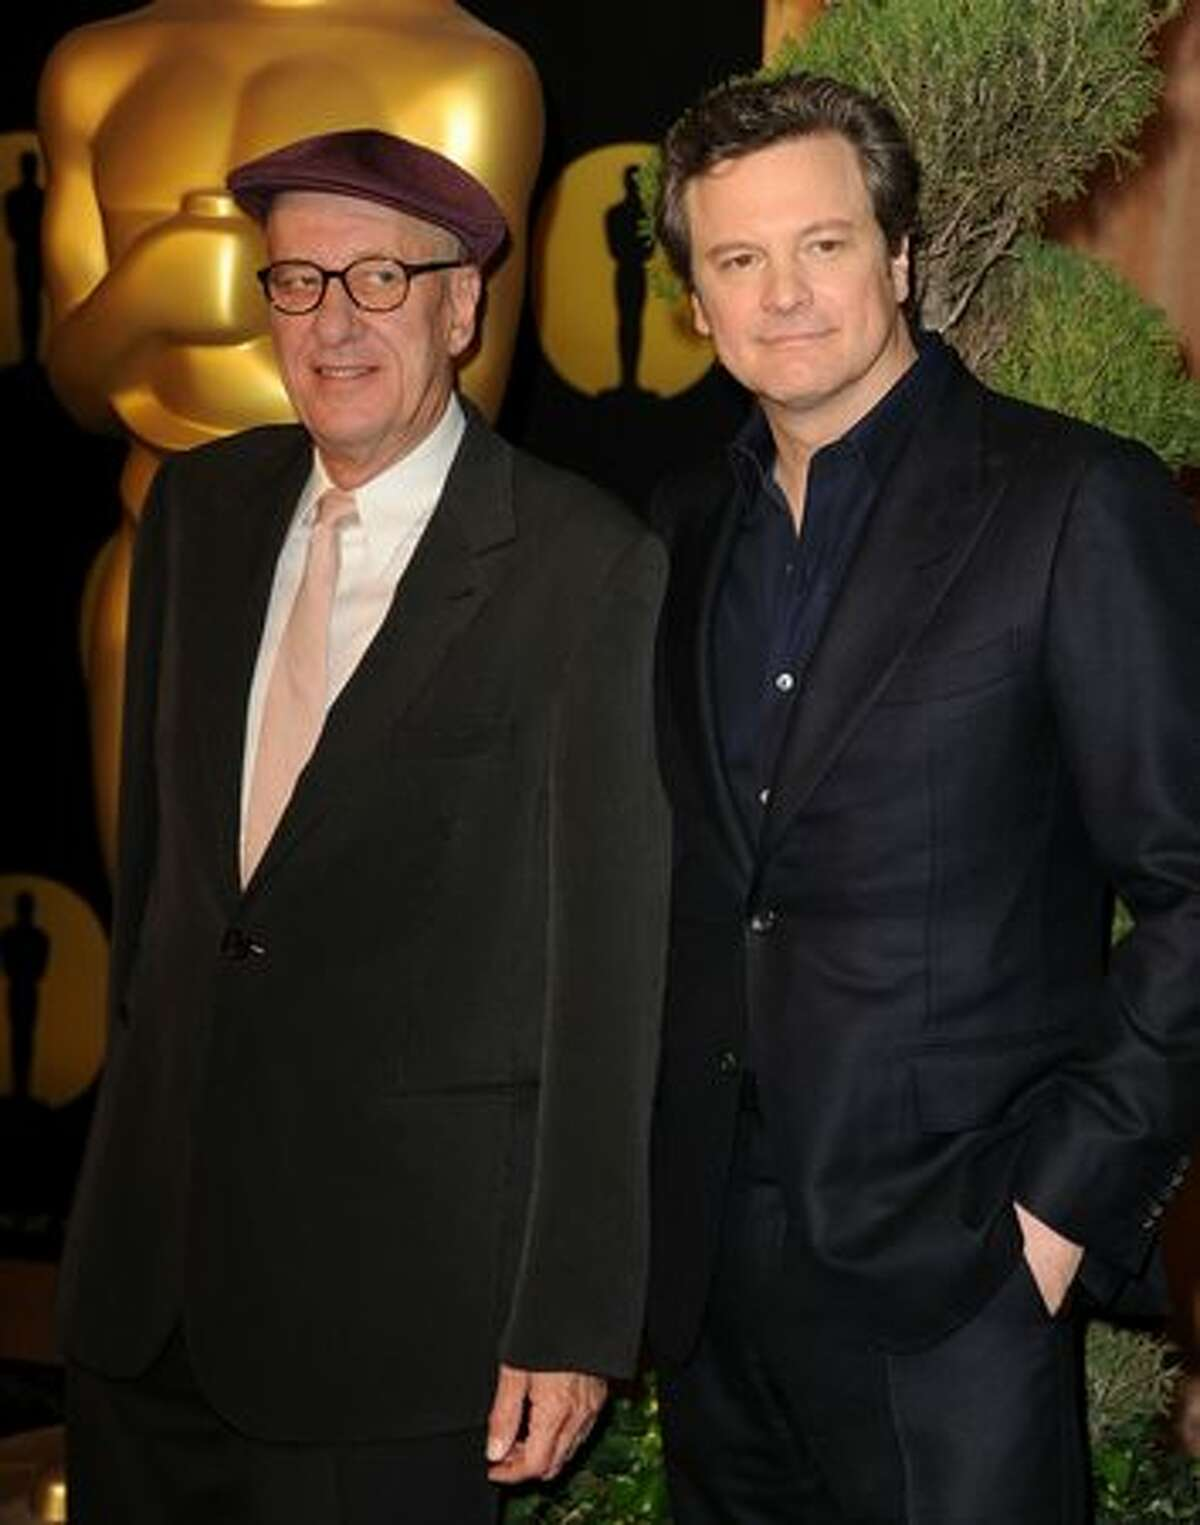 Actors Geoffrey Rush (L) and Colin Firth arrive at the 83rd Academy Awards nominations luncheon held at the Beverly Hilton Hotel in Beverly Hills, California.